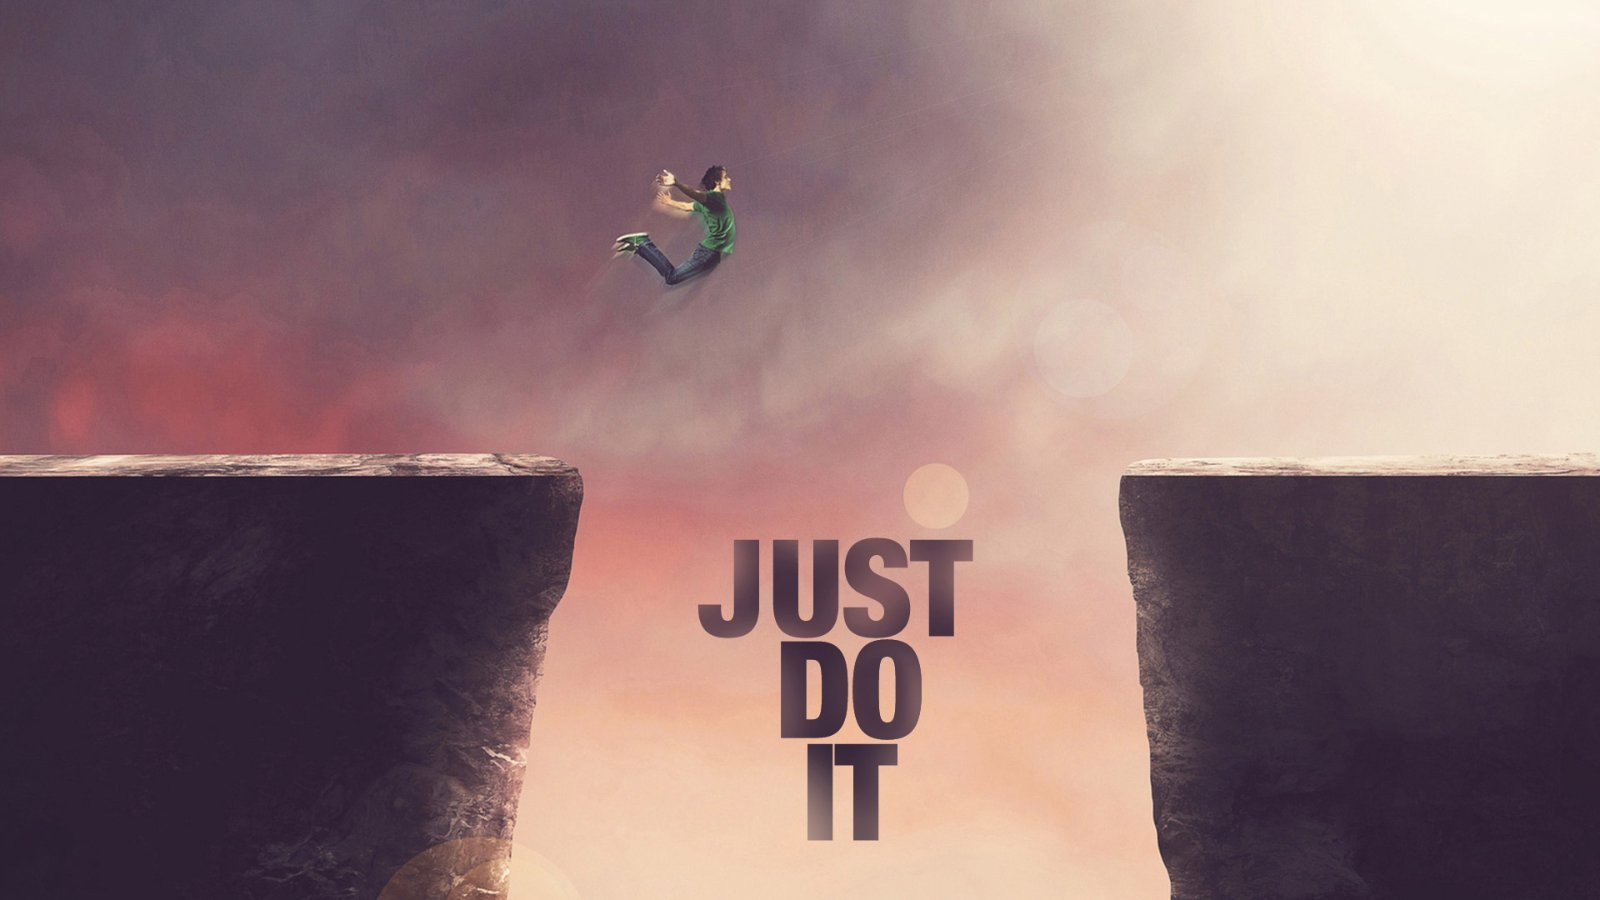 Just Do It Wallpapers High Quality